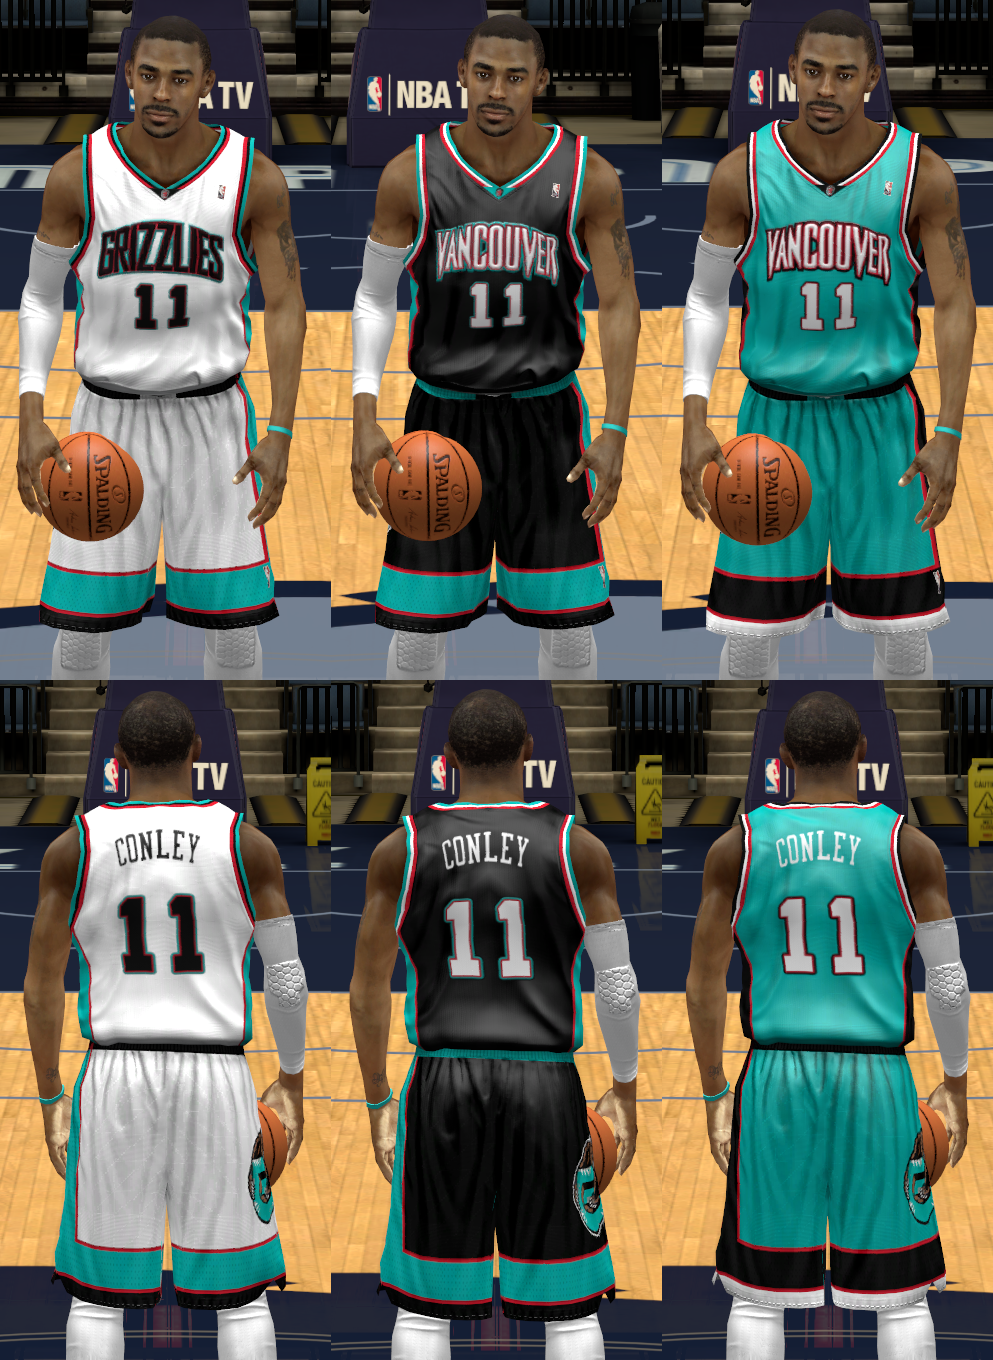 2000/01 Vancouver Grizzlies Uniforms